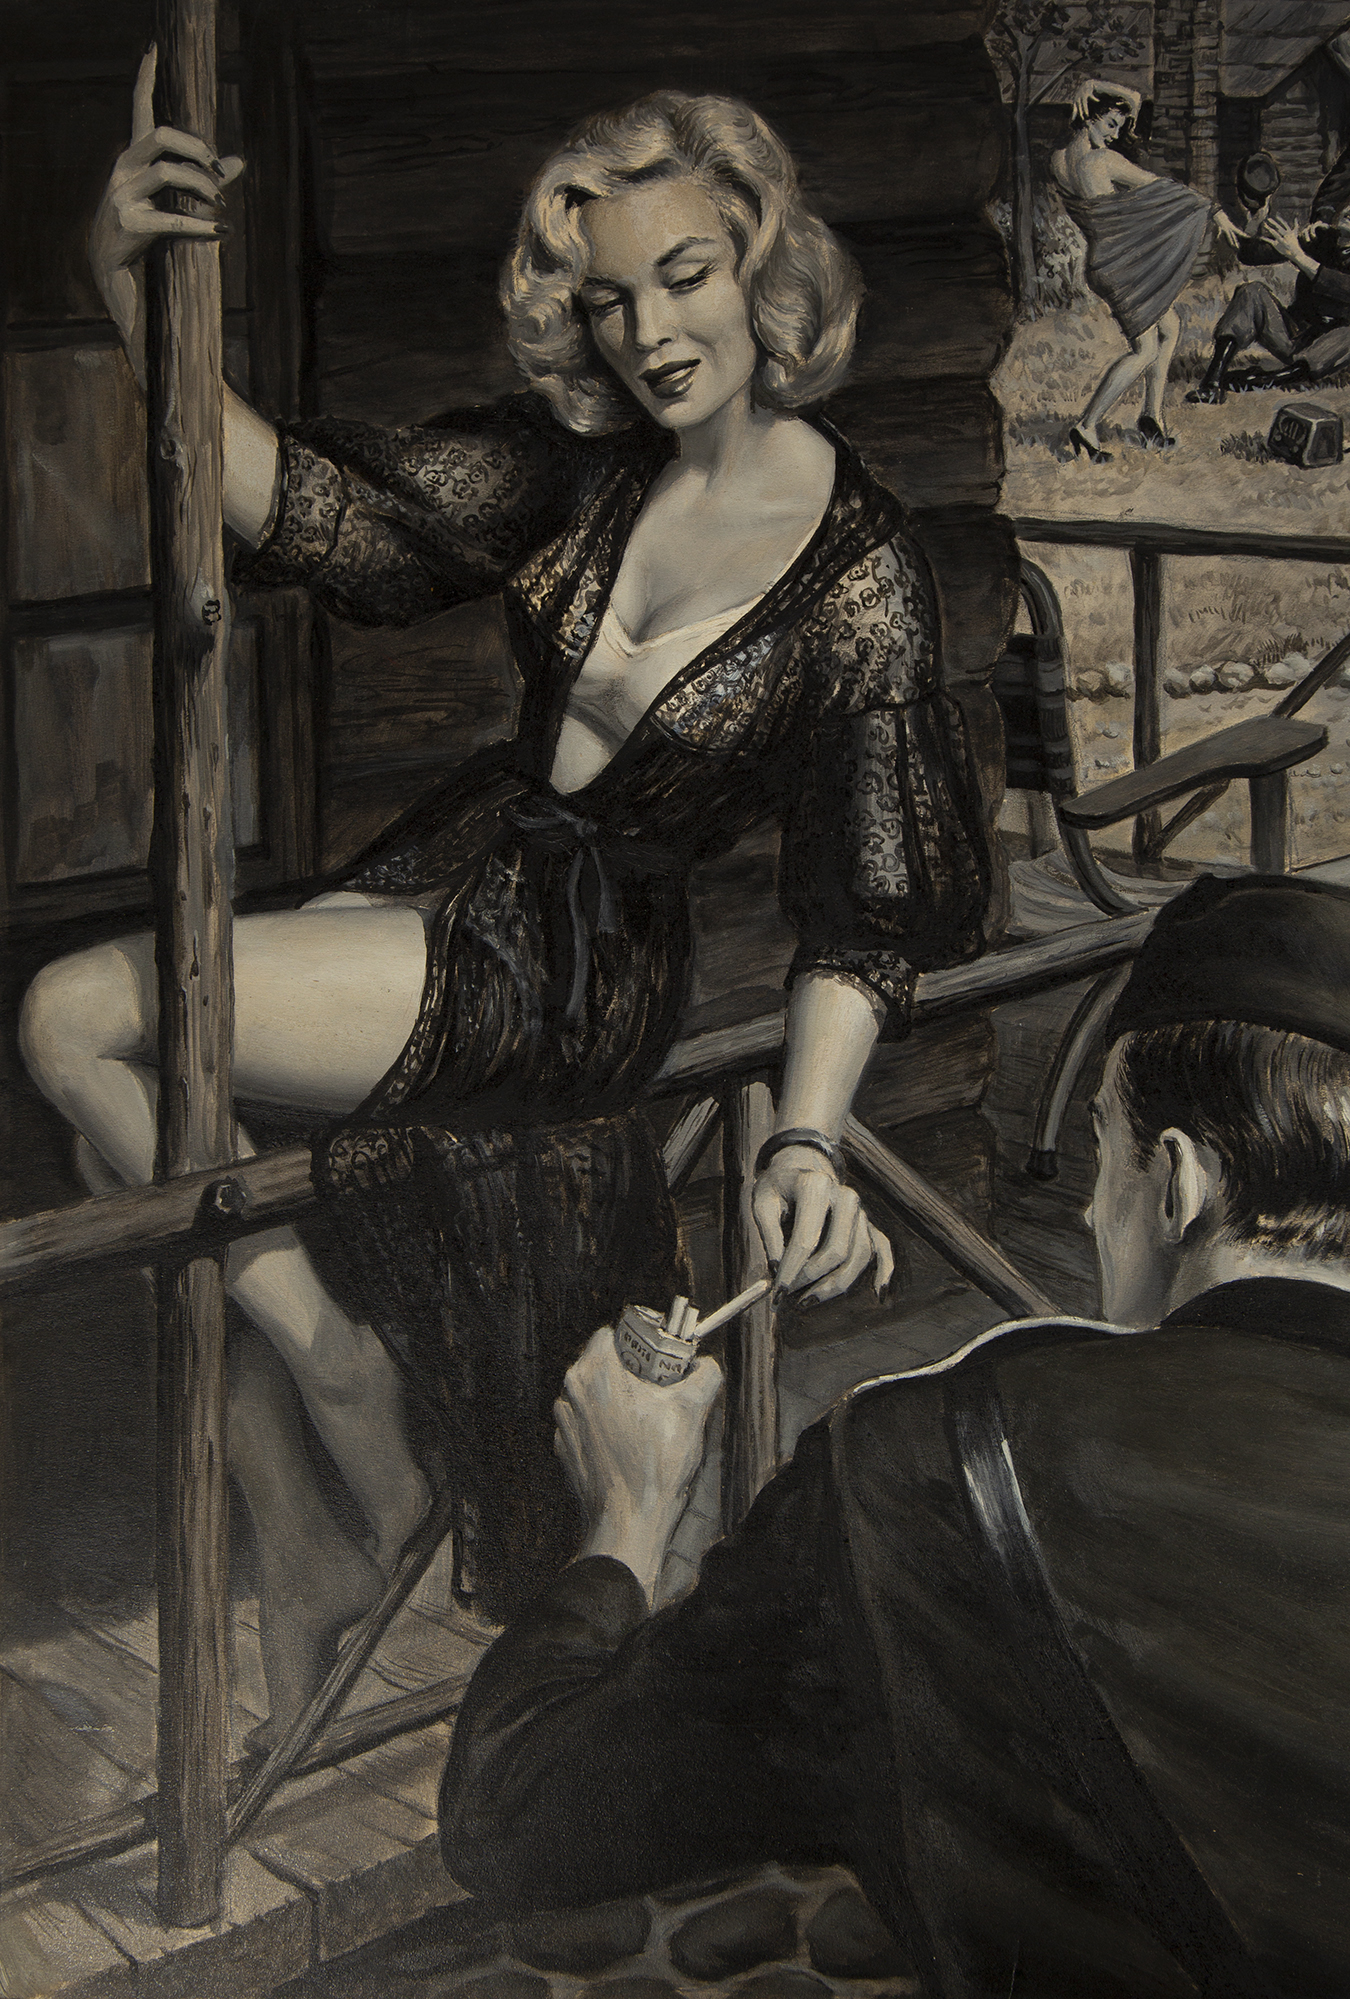 A risqué, robed woman takes a cigarette from a soldier